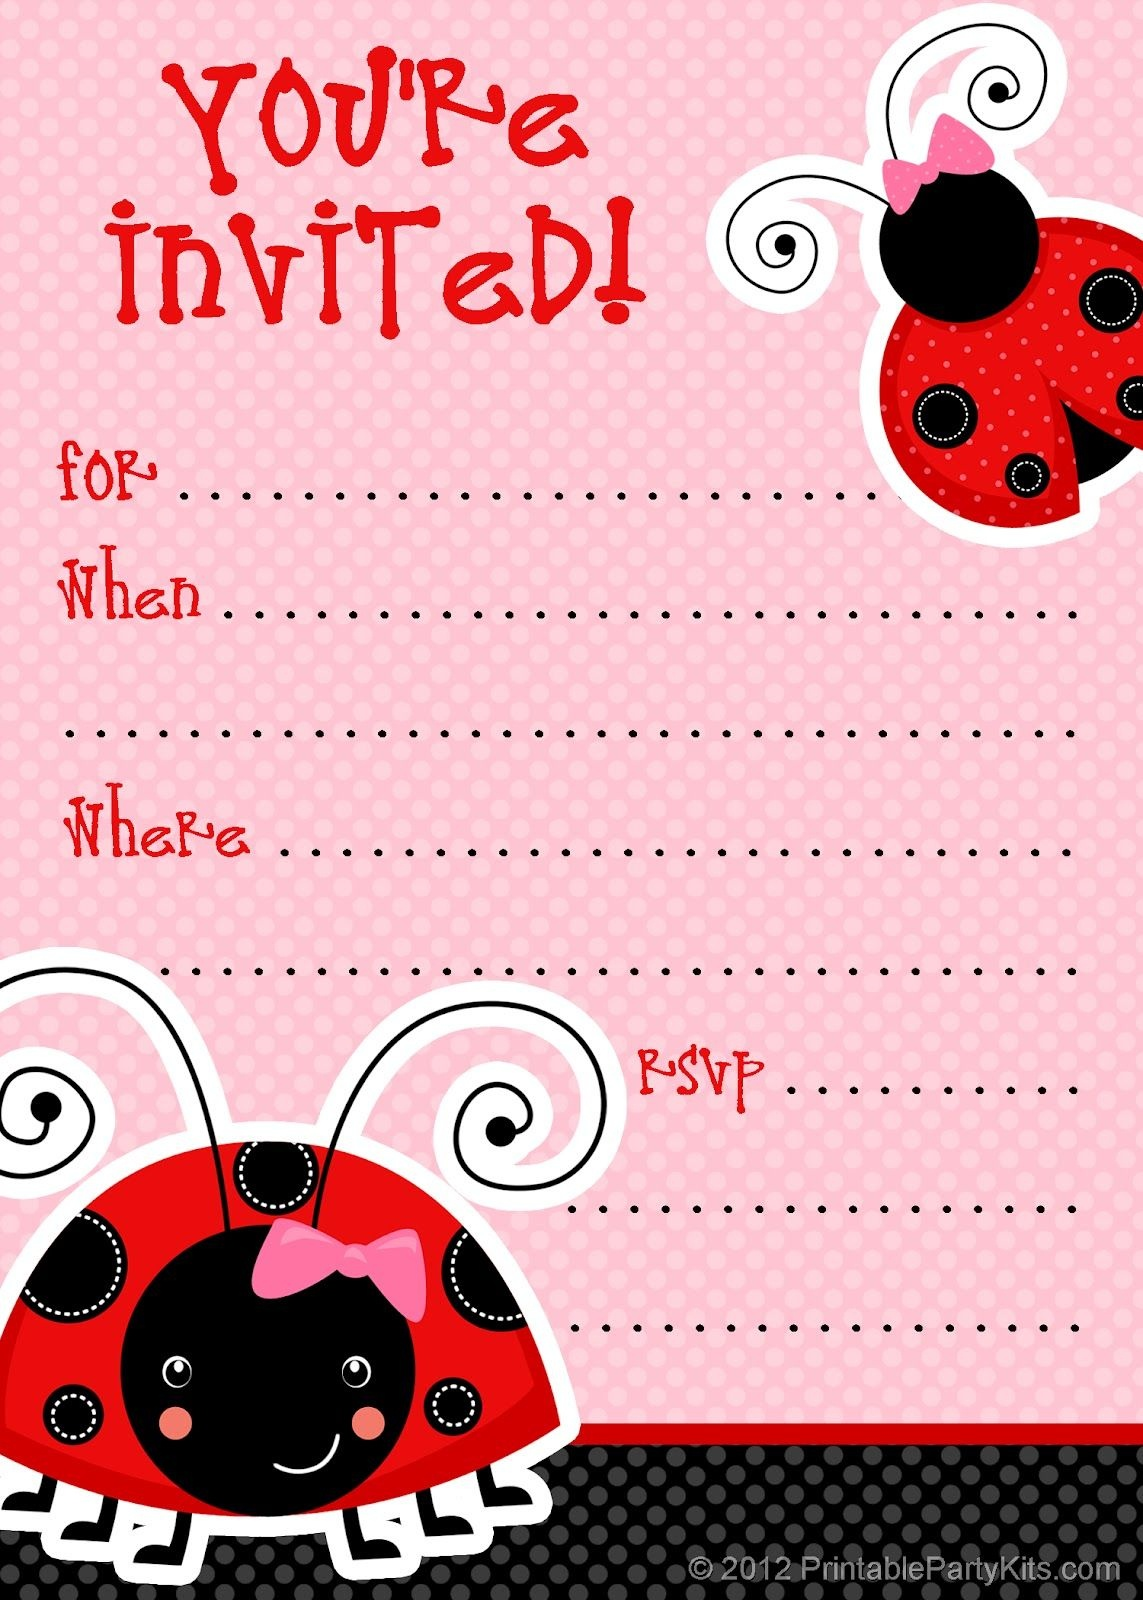 1) Free Printable Ladybug Invitation Blank Template. 2) Beautiful - Free Printable Ladybug Baby Shower Invitations Templates